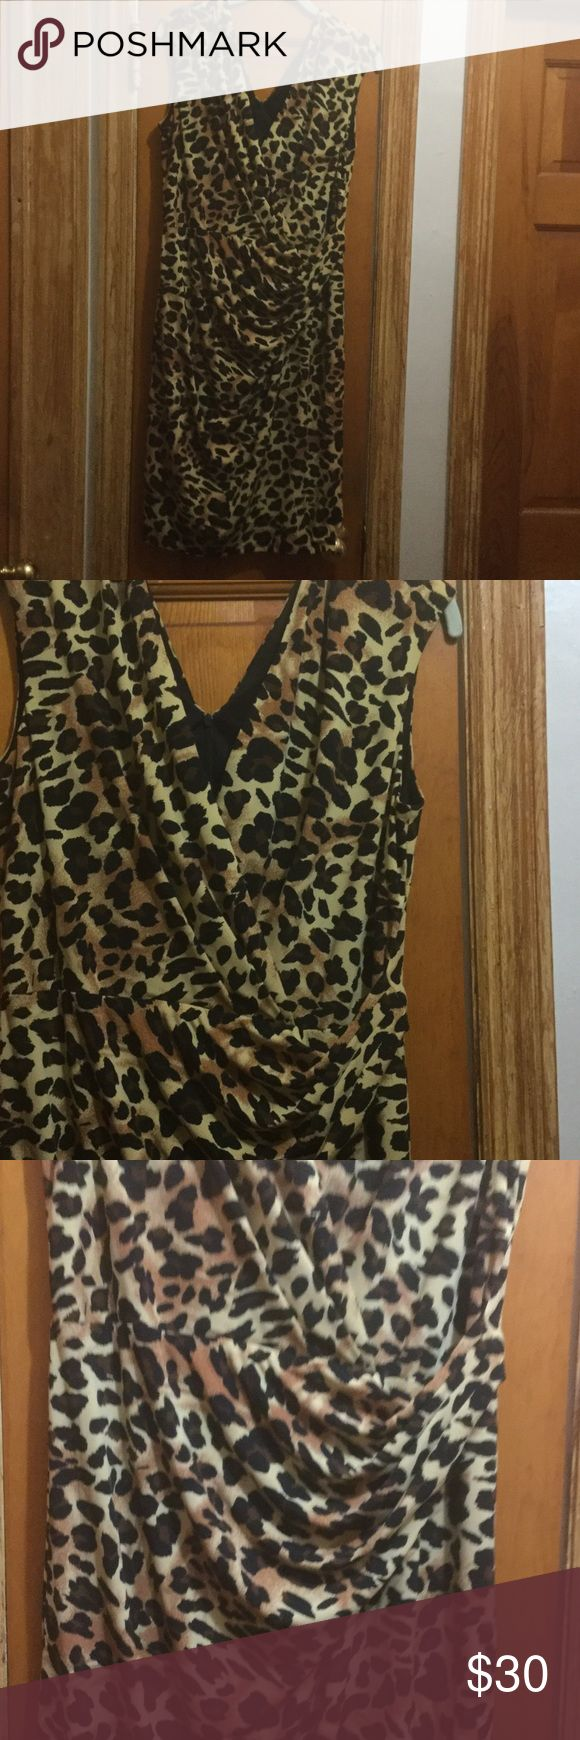 Cheetah dress by Chetta B Only worn once Cheeta B Dresses